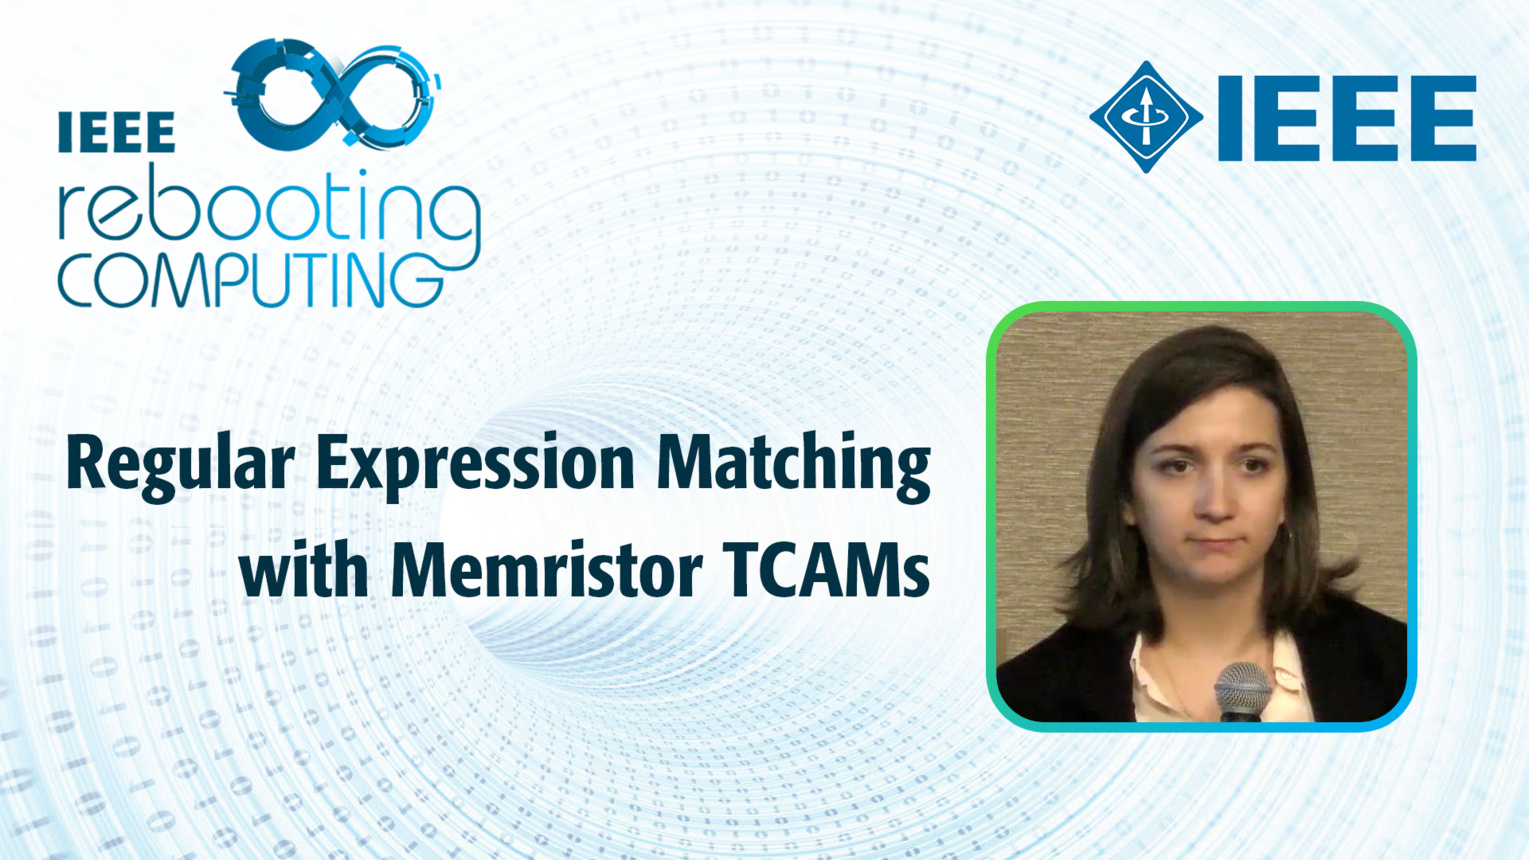 Regular Expression Matching with Memristor TCAMs - Cat Graves - ICRC 2018